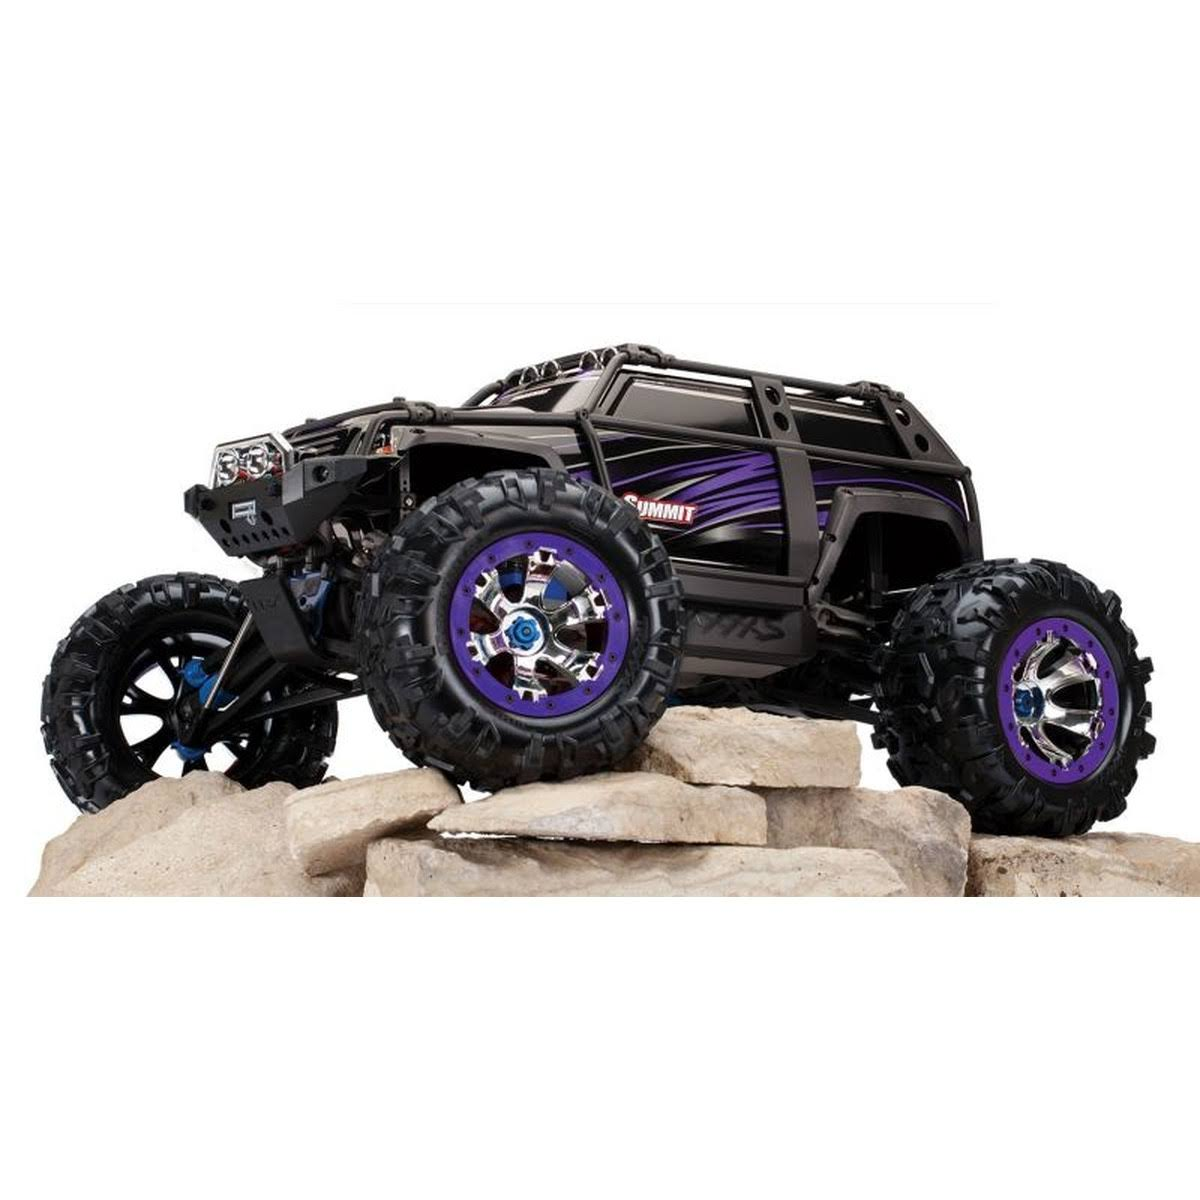 Traxxas 1/10 Summit 4WD RTR Monster Truck w/TQi Purple